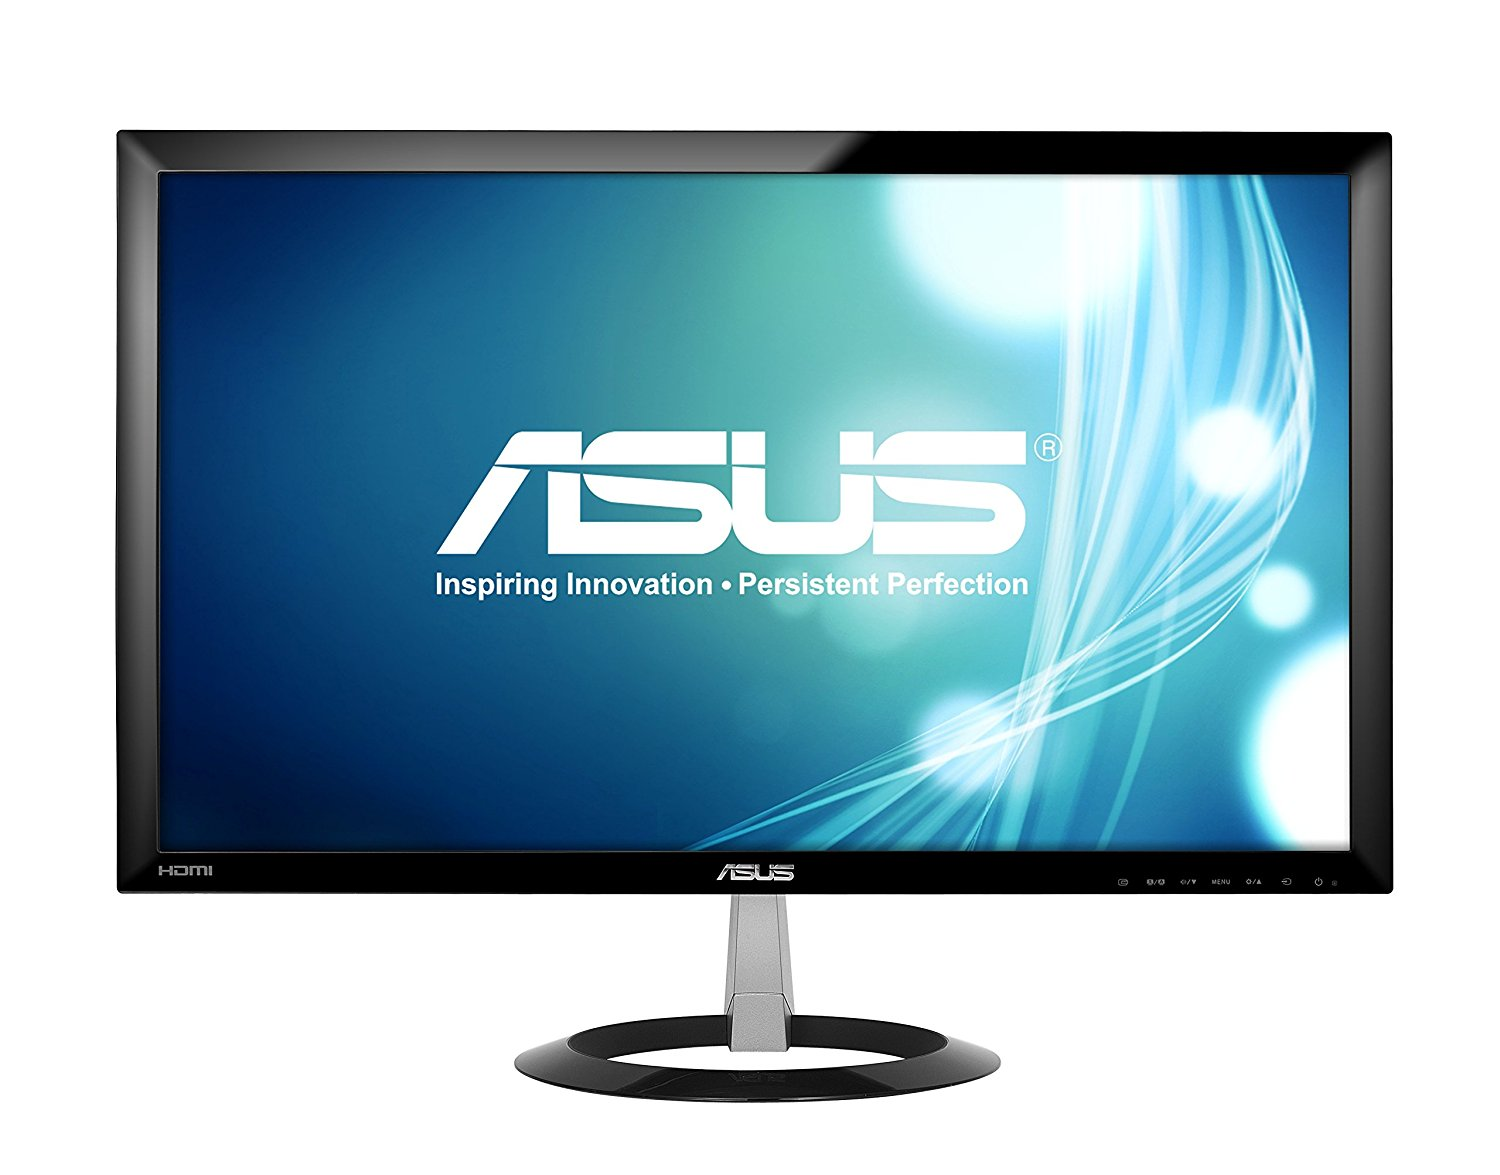 9. ASUS 23-inch Full HD Wide screen Gaming Monitor 1080p